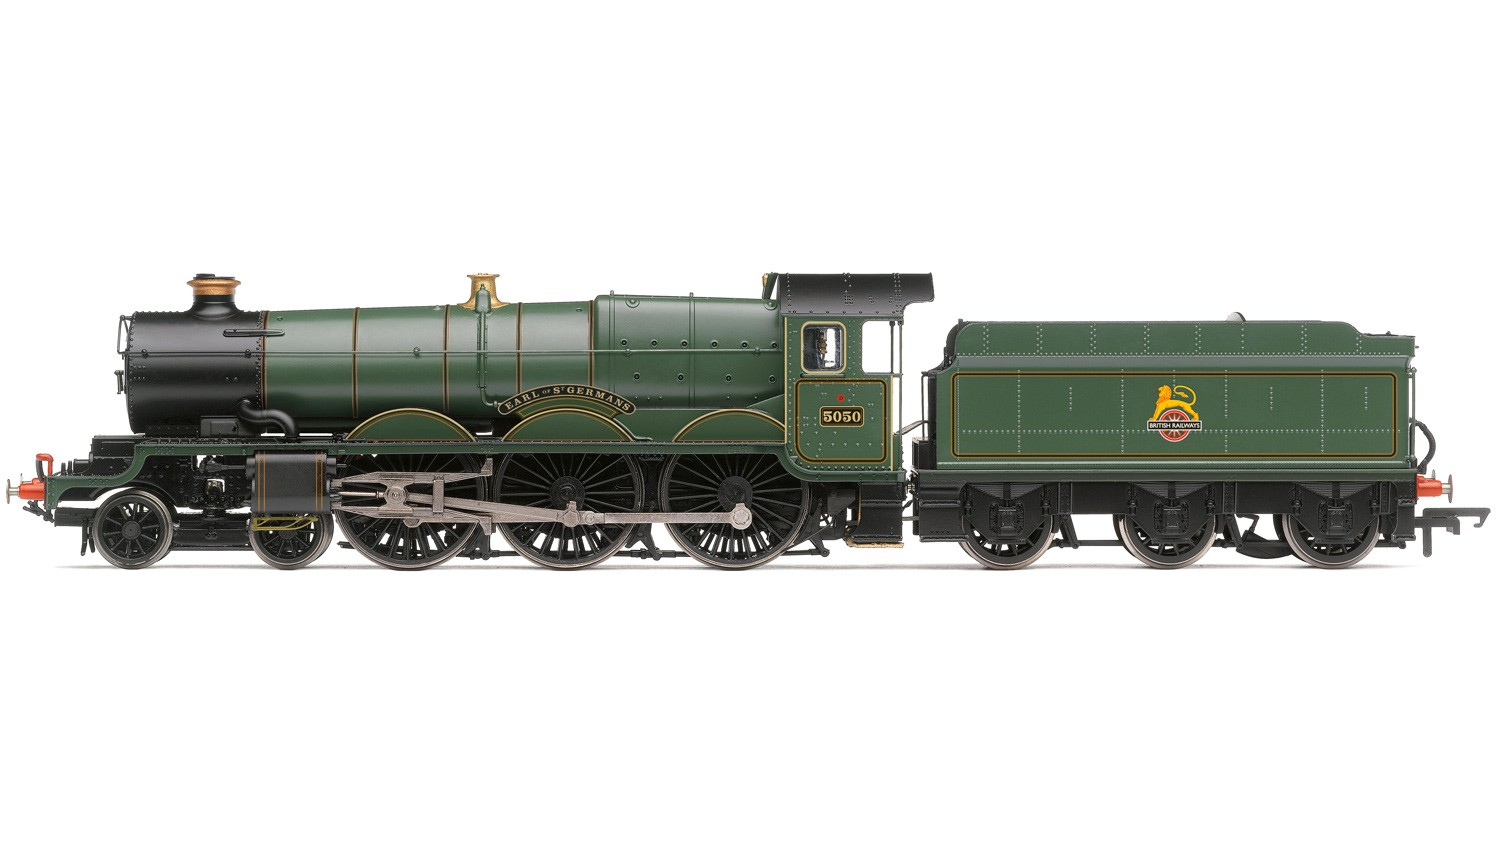 Hornby - R3383TTS - BR Castle 5050 Earl of St Germans TTS Sound Fitted